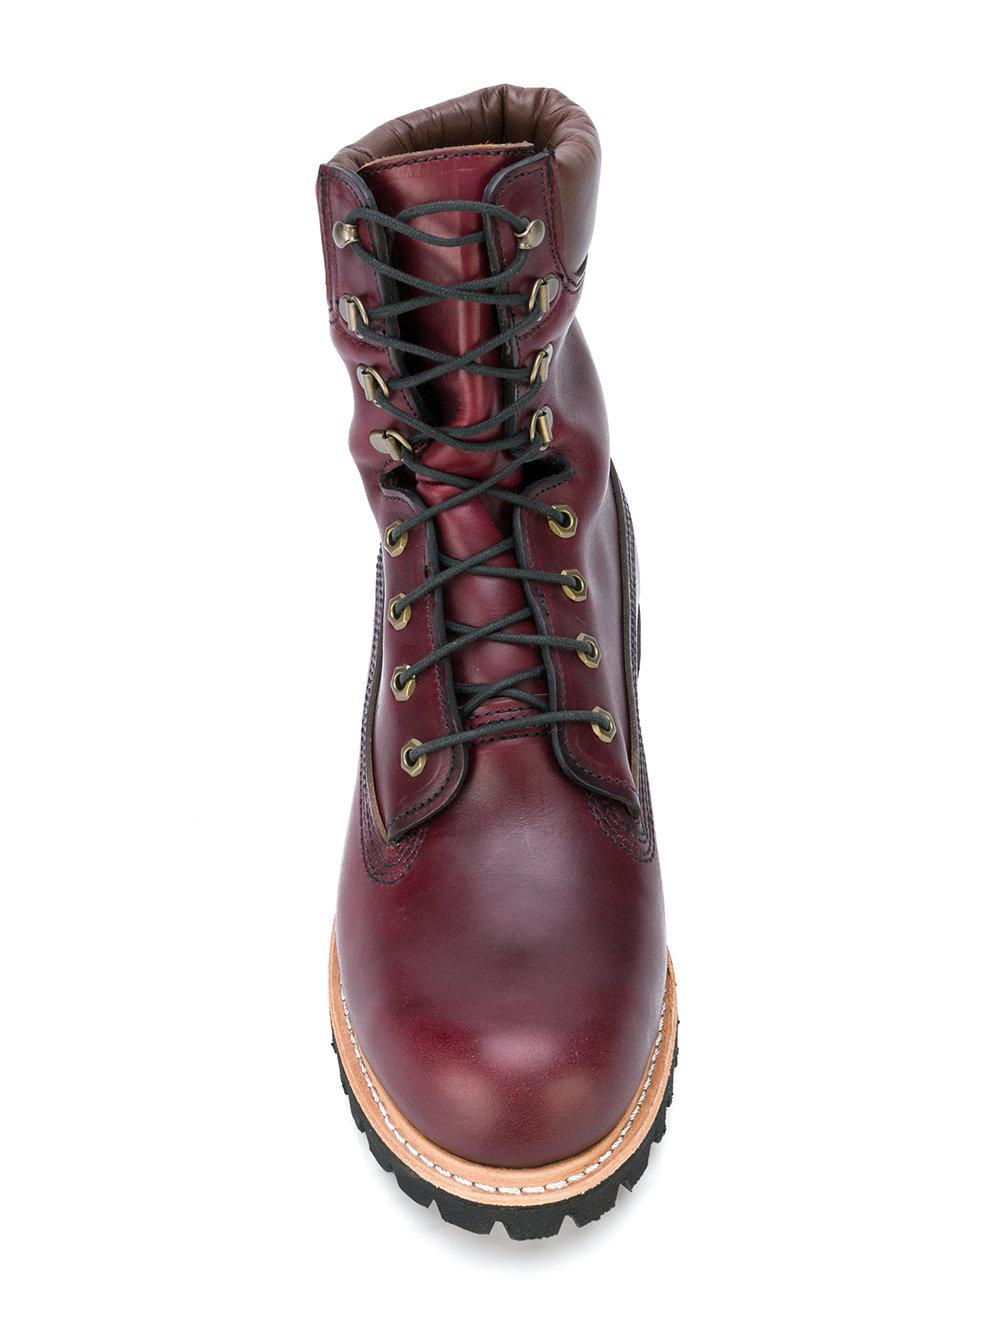 25173436f2ba Lyst - Timberland Vibram Ankle Boots in Purple for Men